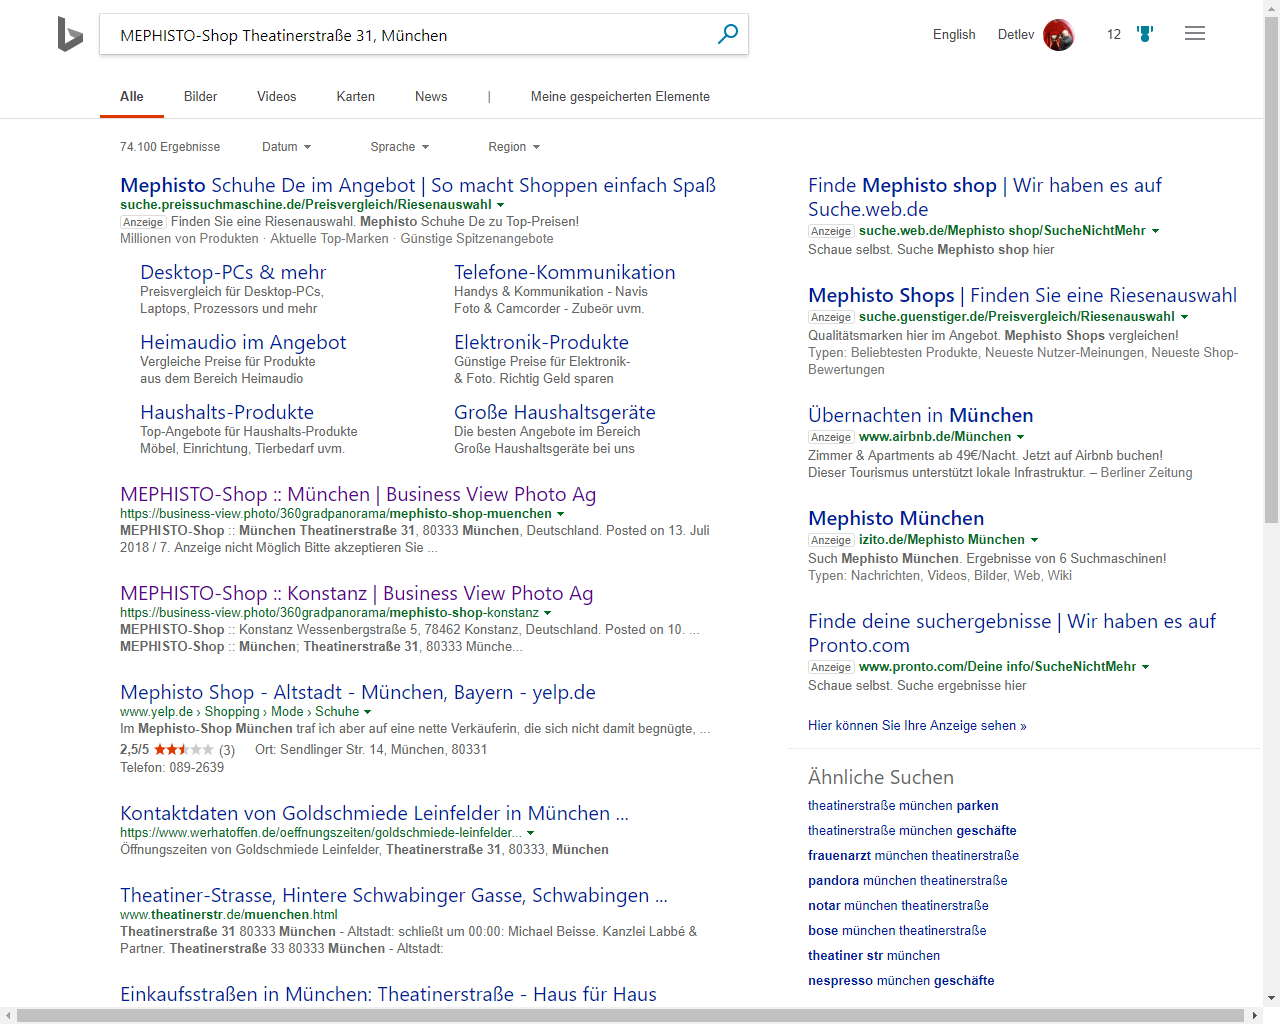 bing Places for Business Beispieleintrag